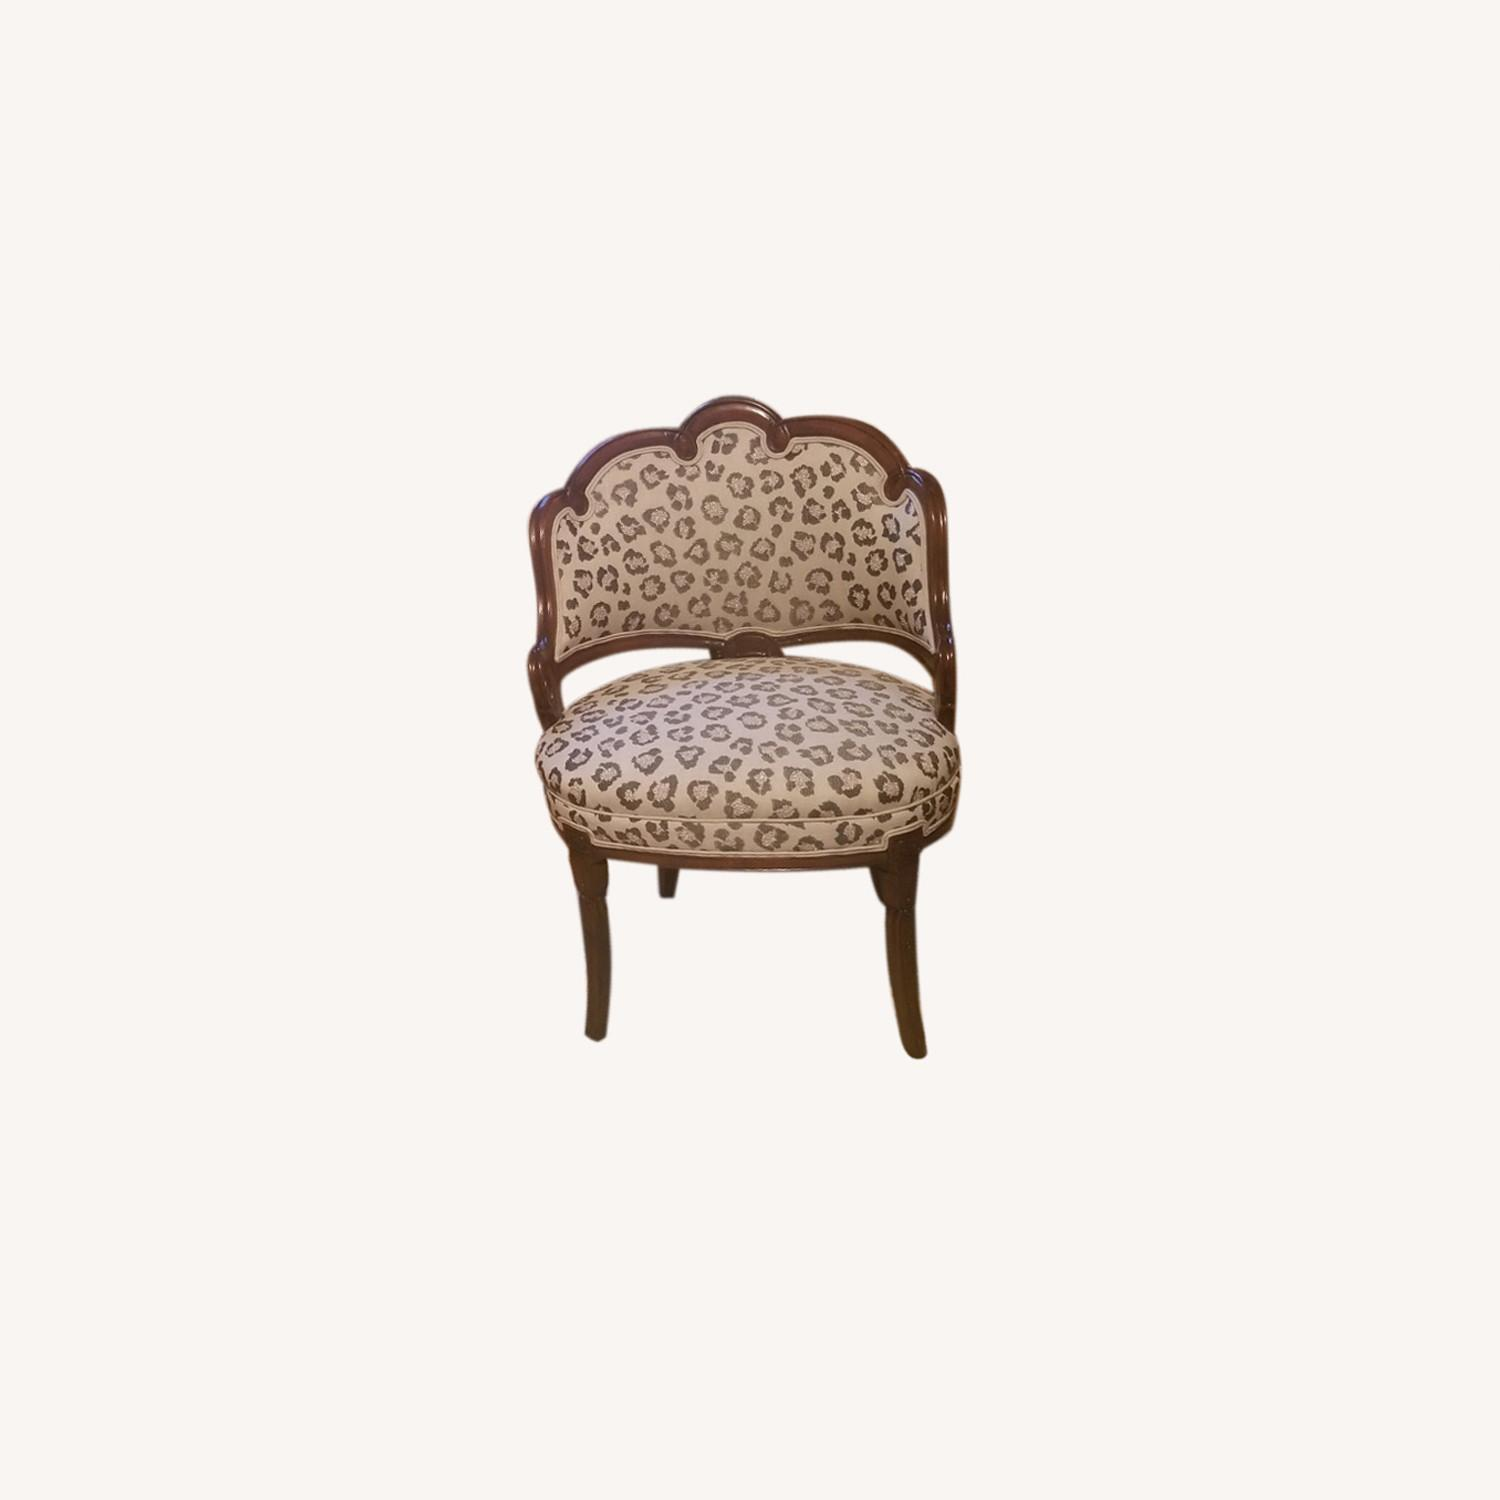 Side Accent Chairs - Antique/Vintage - image-0